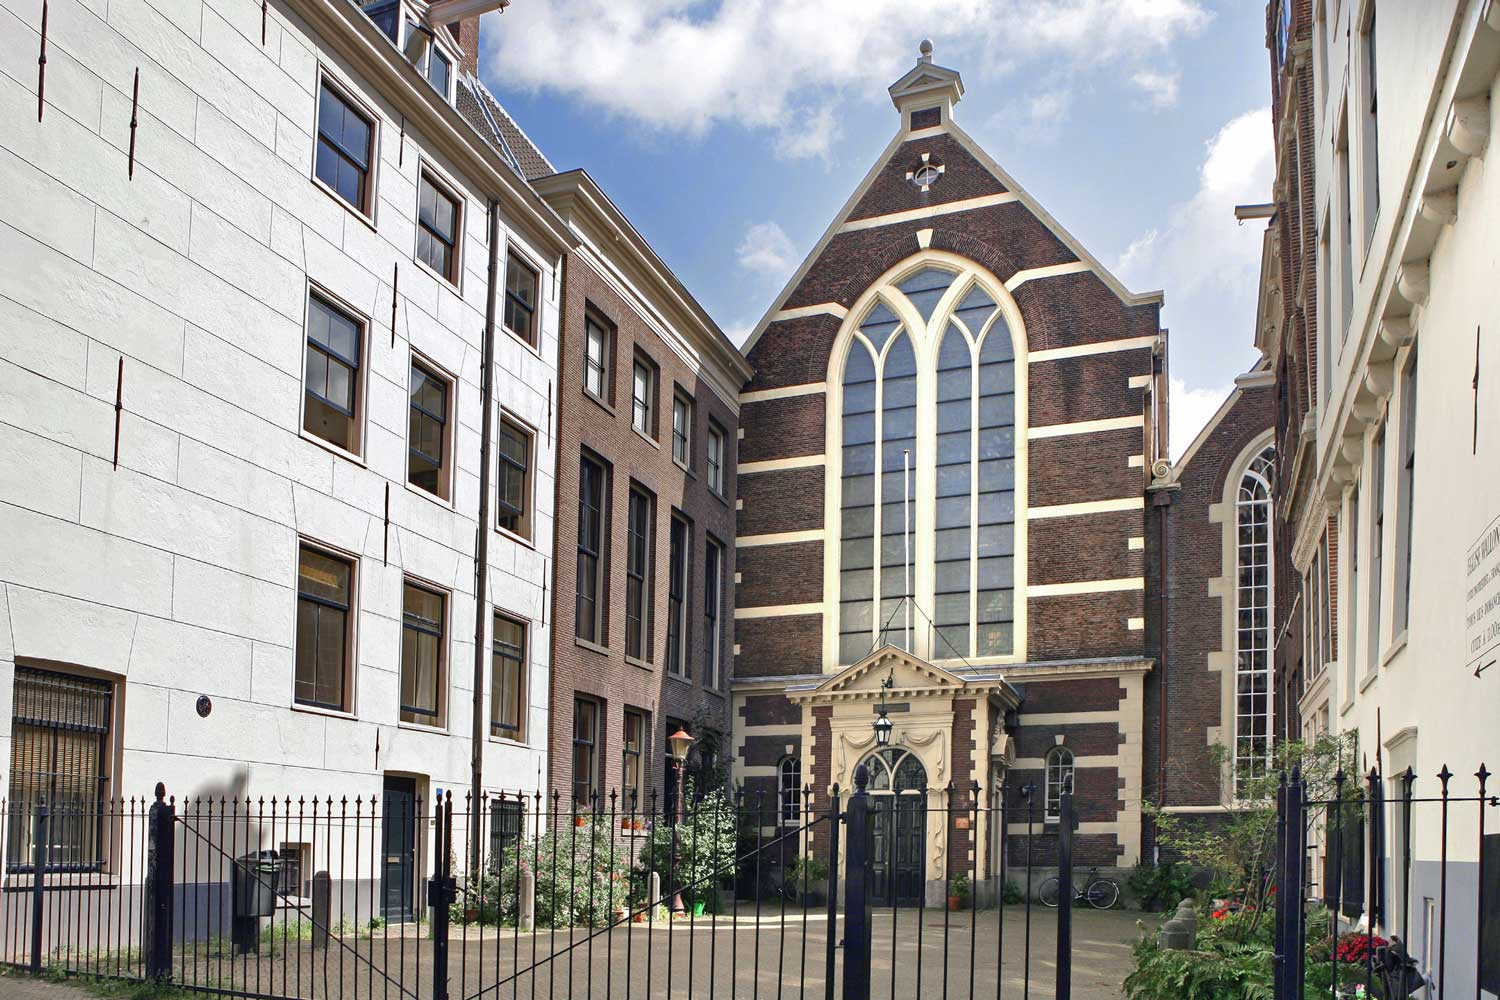 De Matthäus Passion concert in Amsterdam op 18 april 2019 in de Waalse Kerk door barokspecialisten Ribattuta Musica